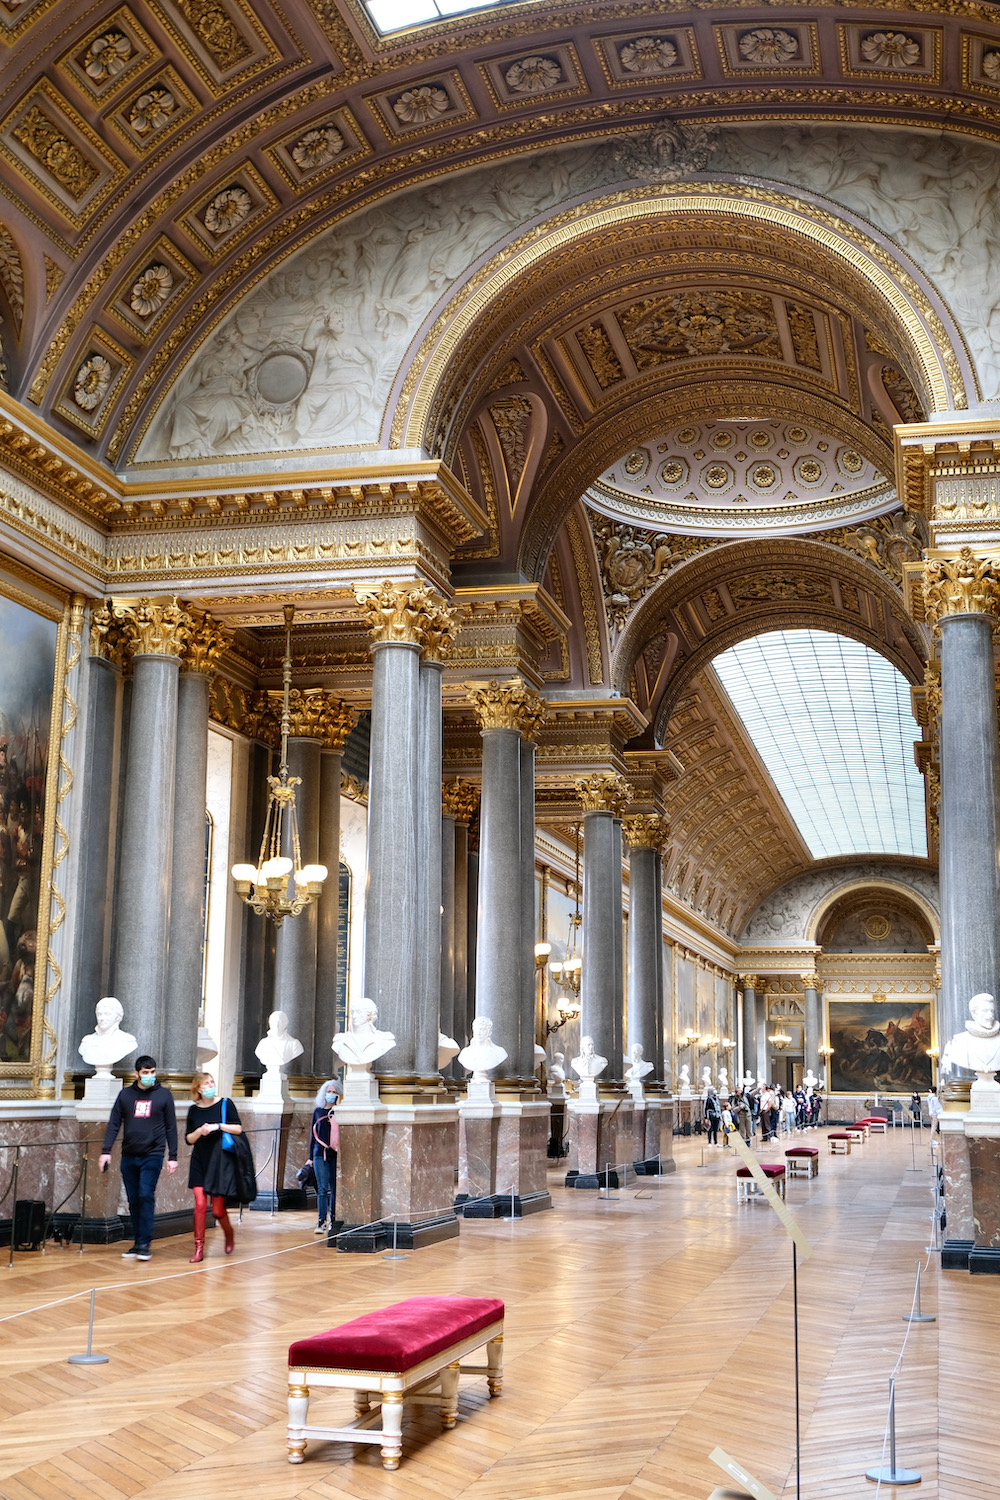 La Galerie des Batailles is the biggest gallery in the Château